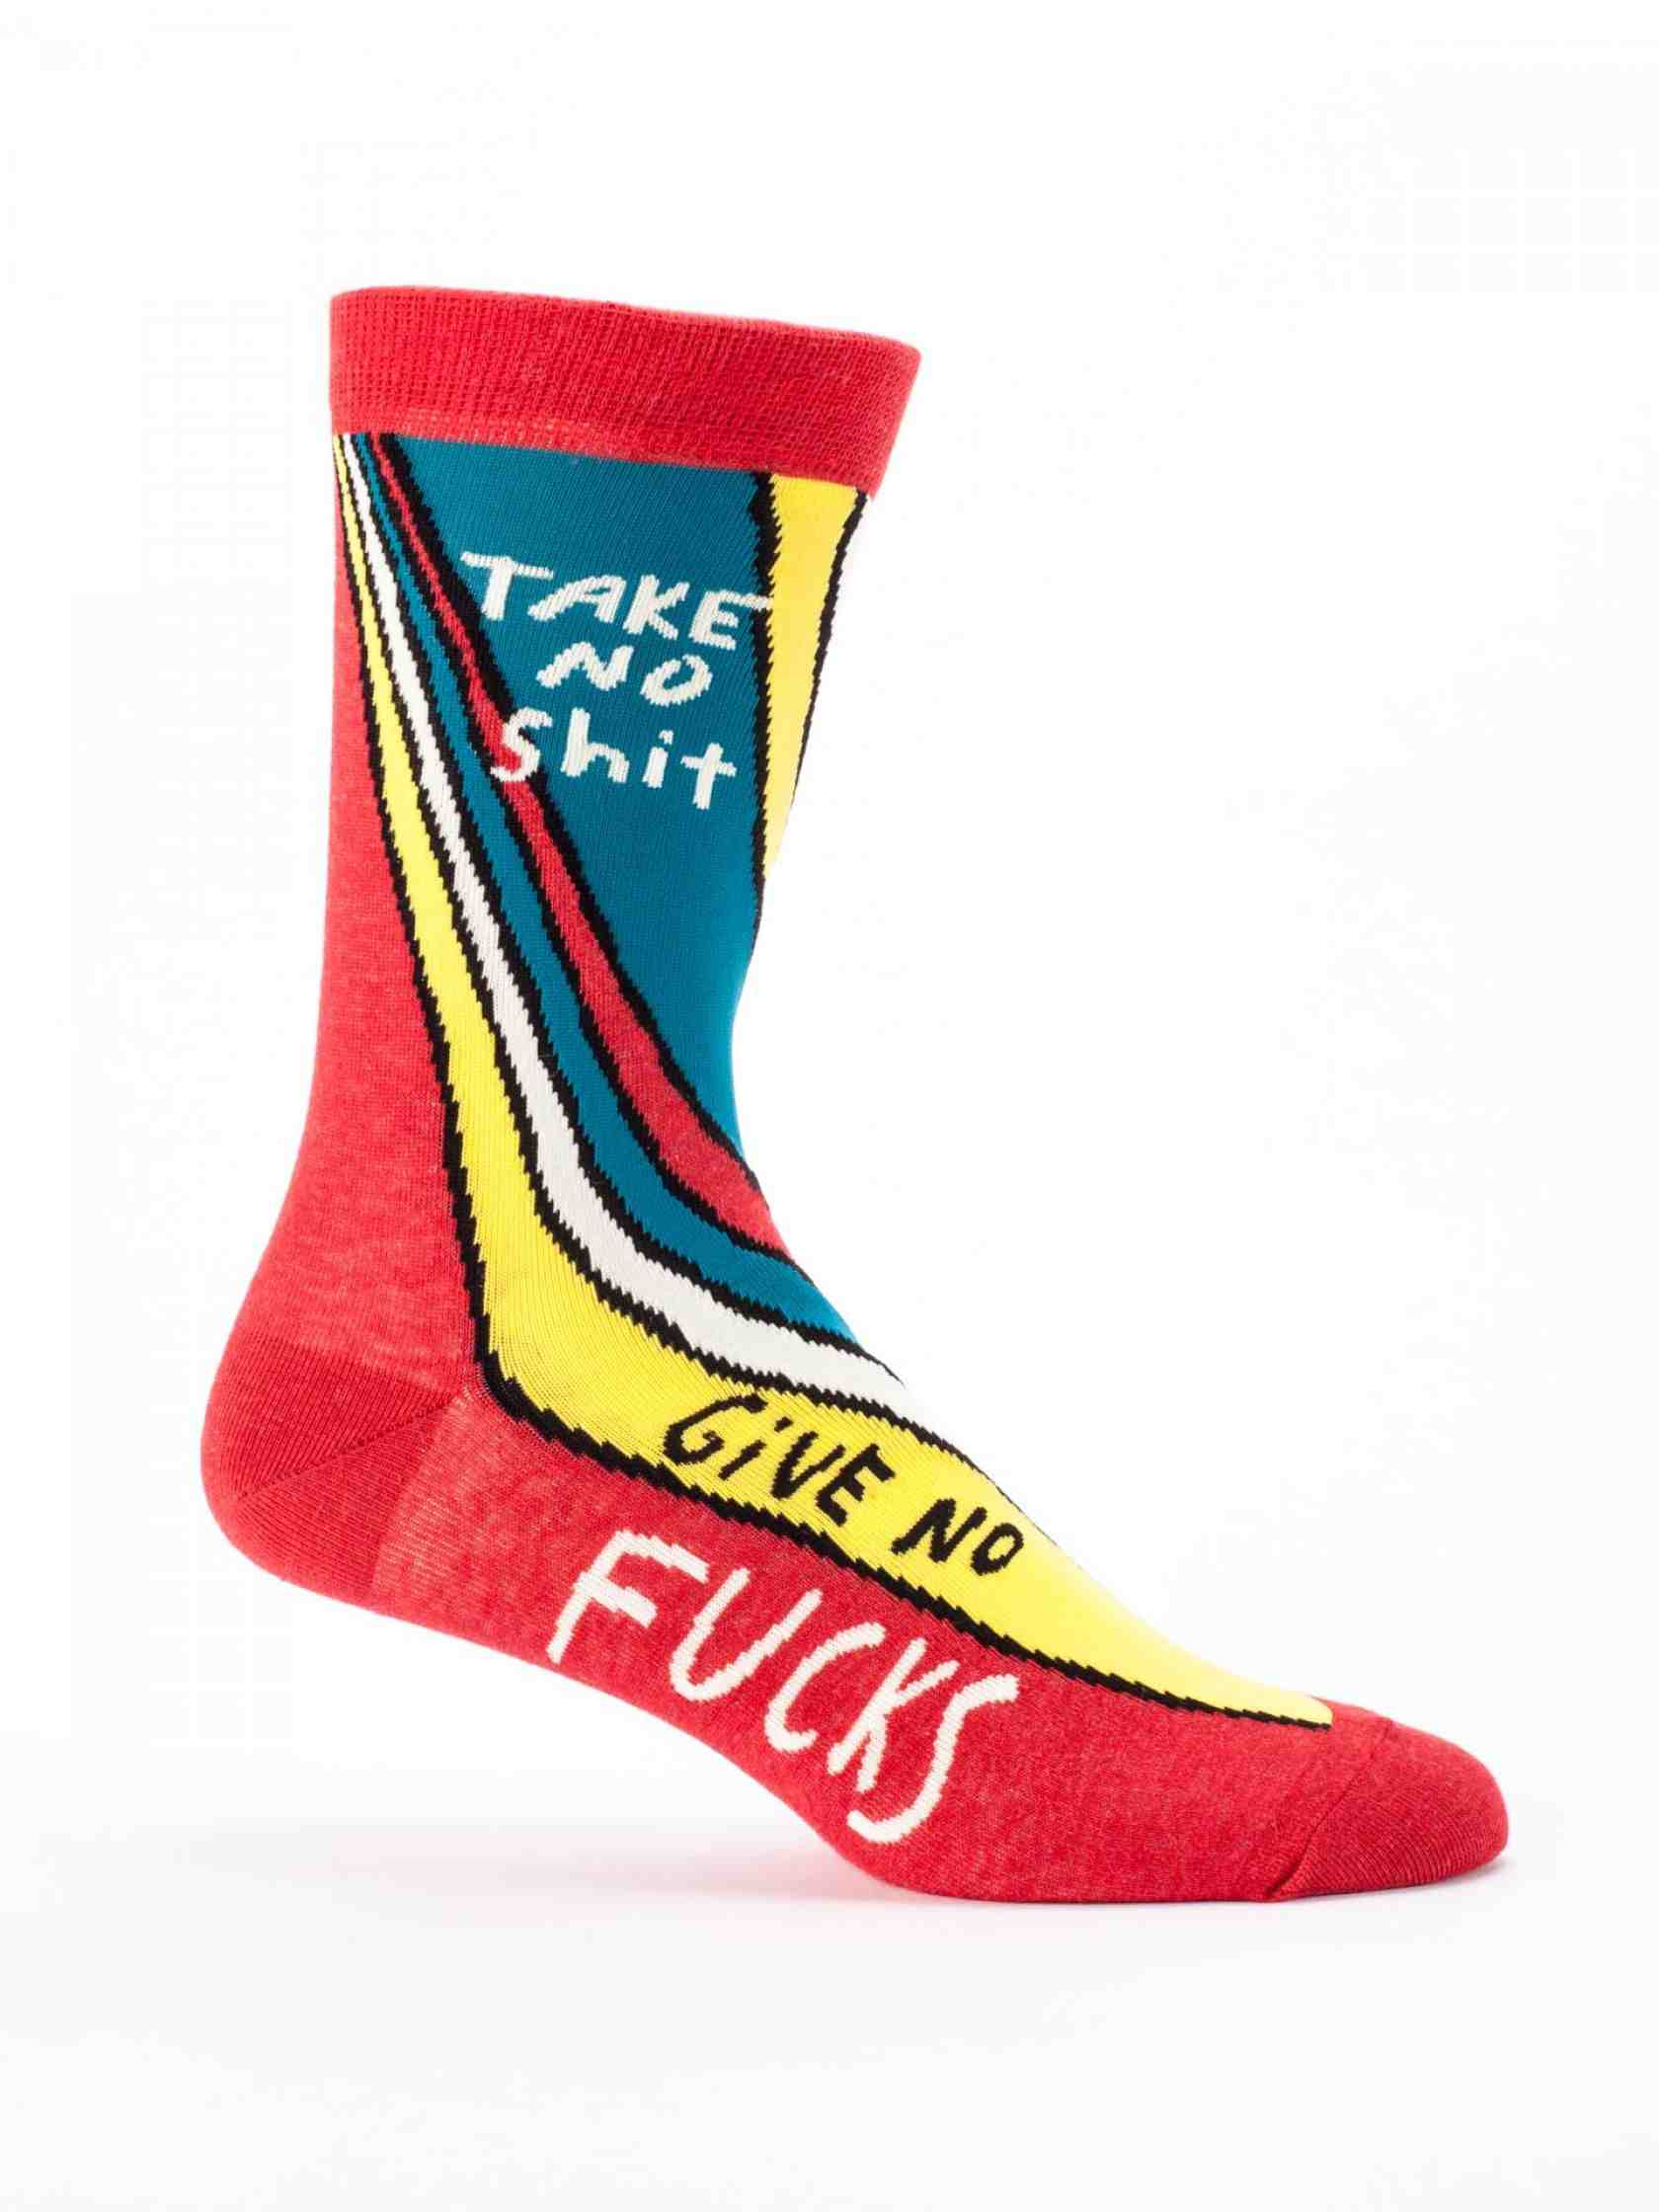 Blue Q Men's Socks | Take No Sh